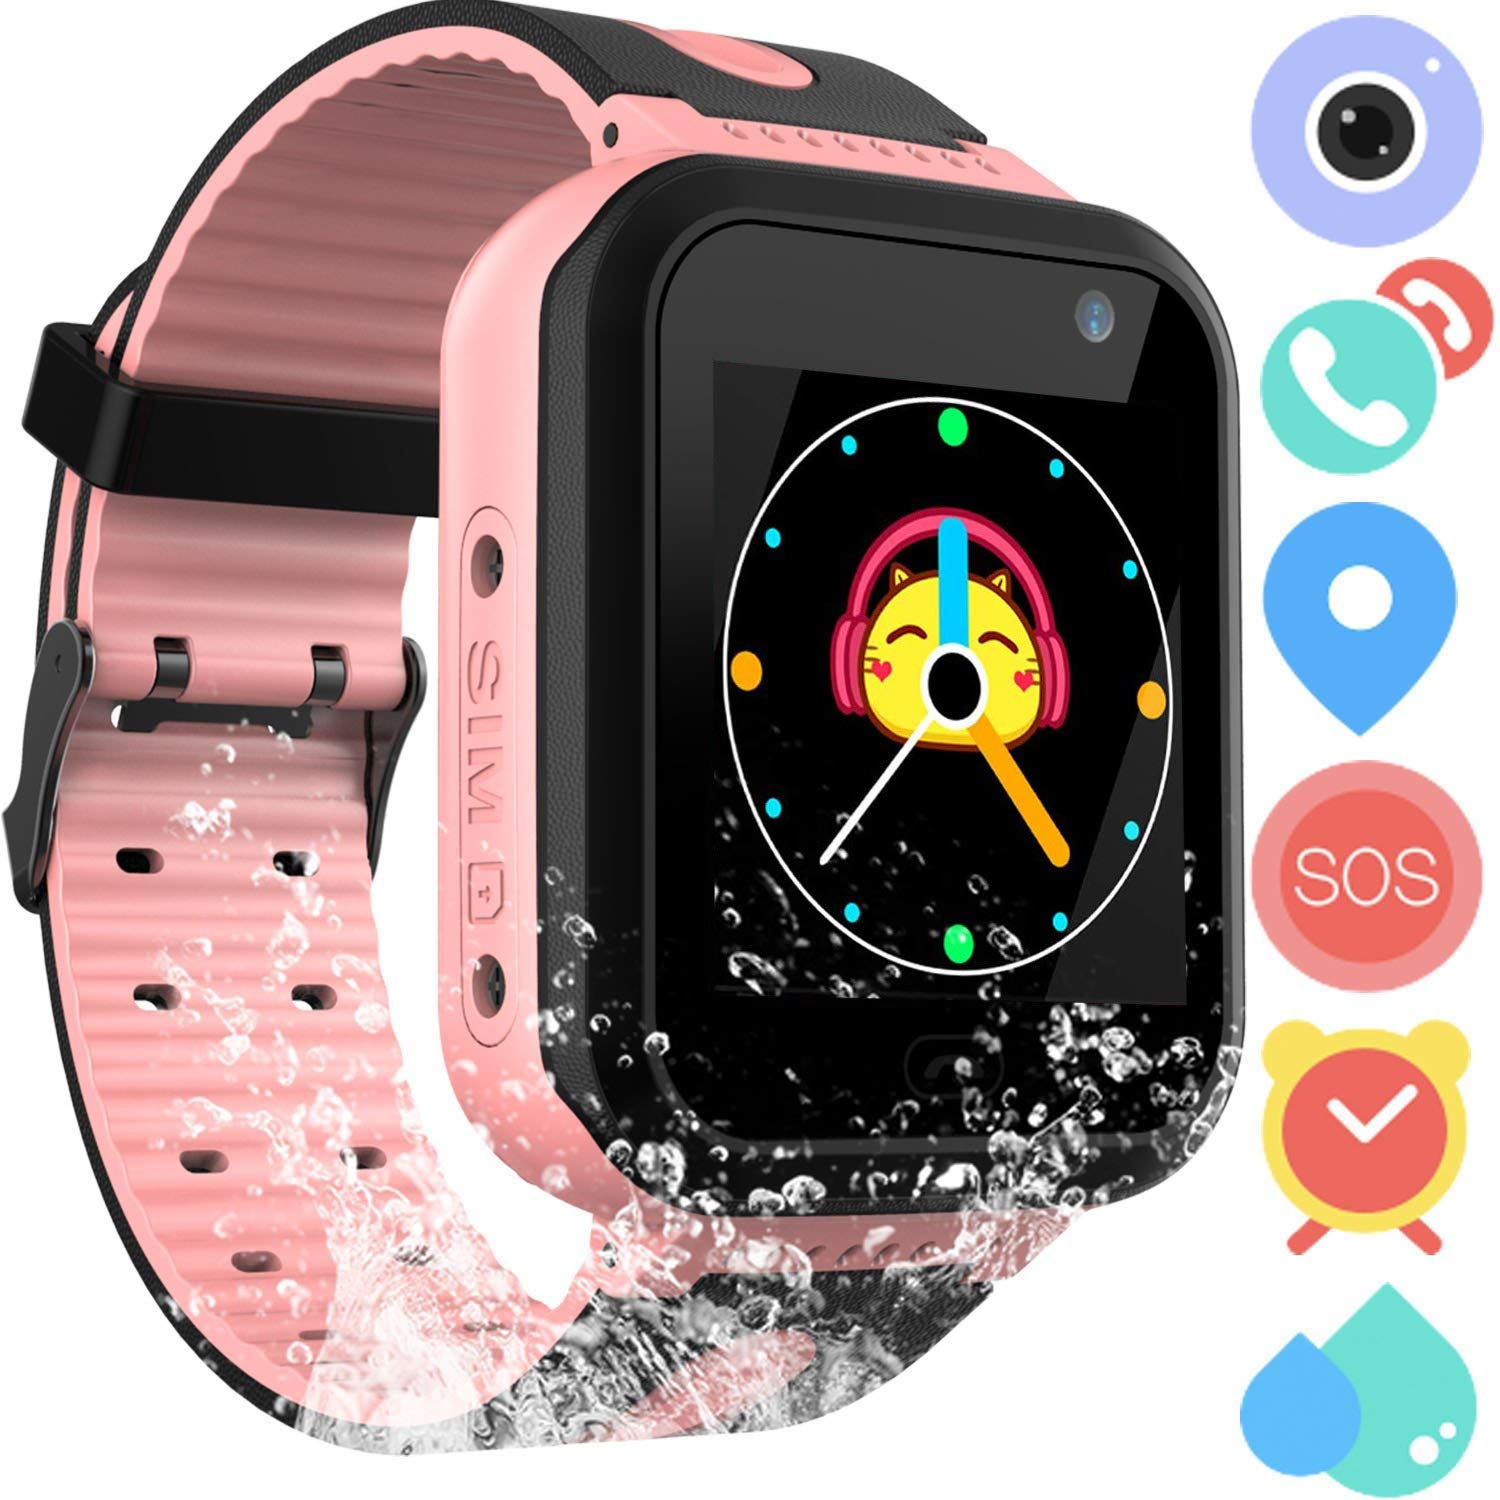 Kids Smart Watch Phone for Boys Girls – Waterproof Smartwatch Phone Touchscreen with Camera Call Voice Chat SOS Flashlight Anti Lost Alarm Clock Game ...